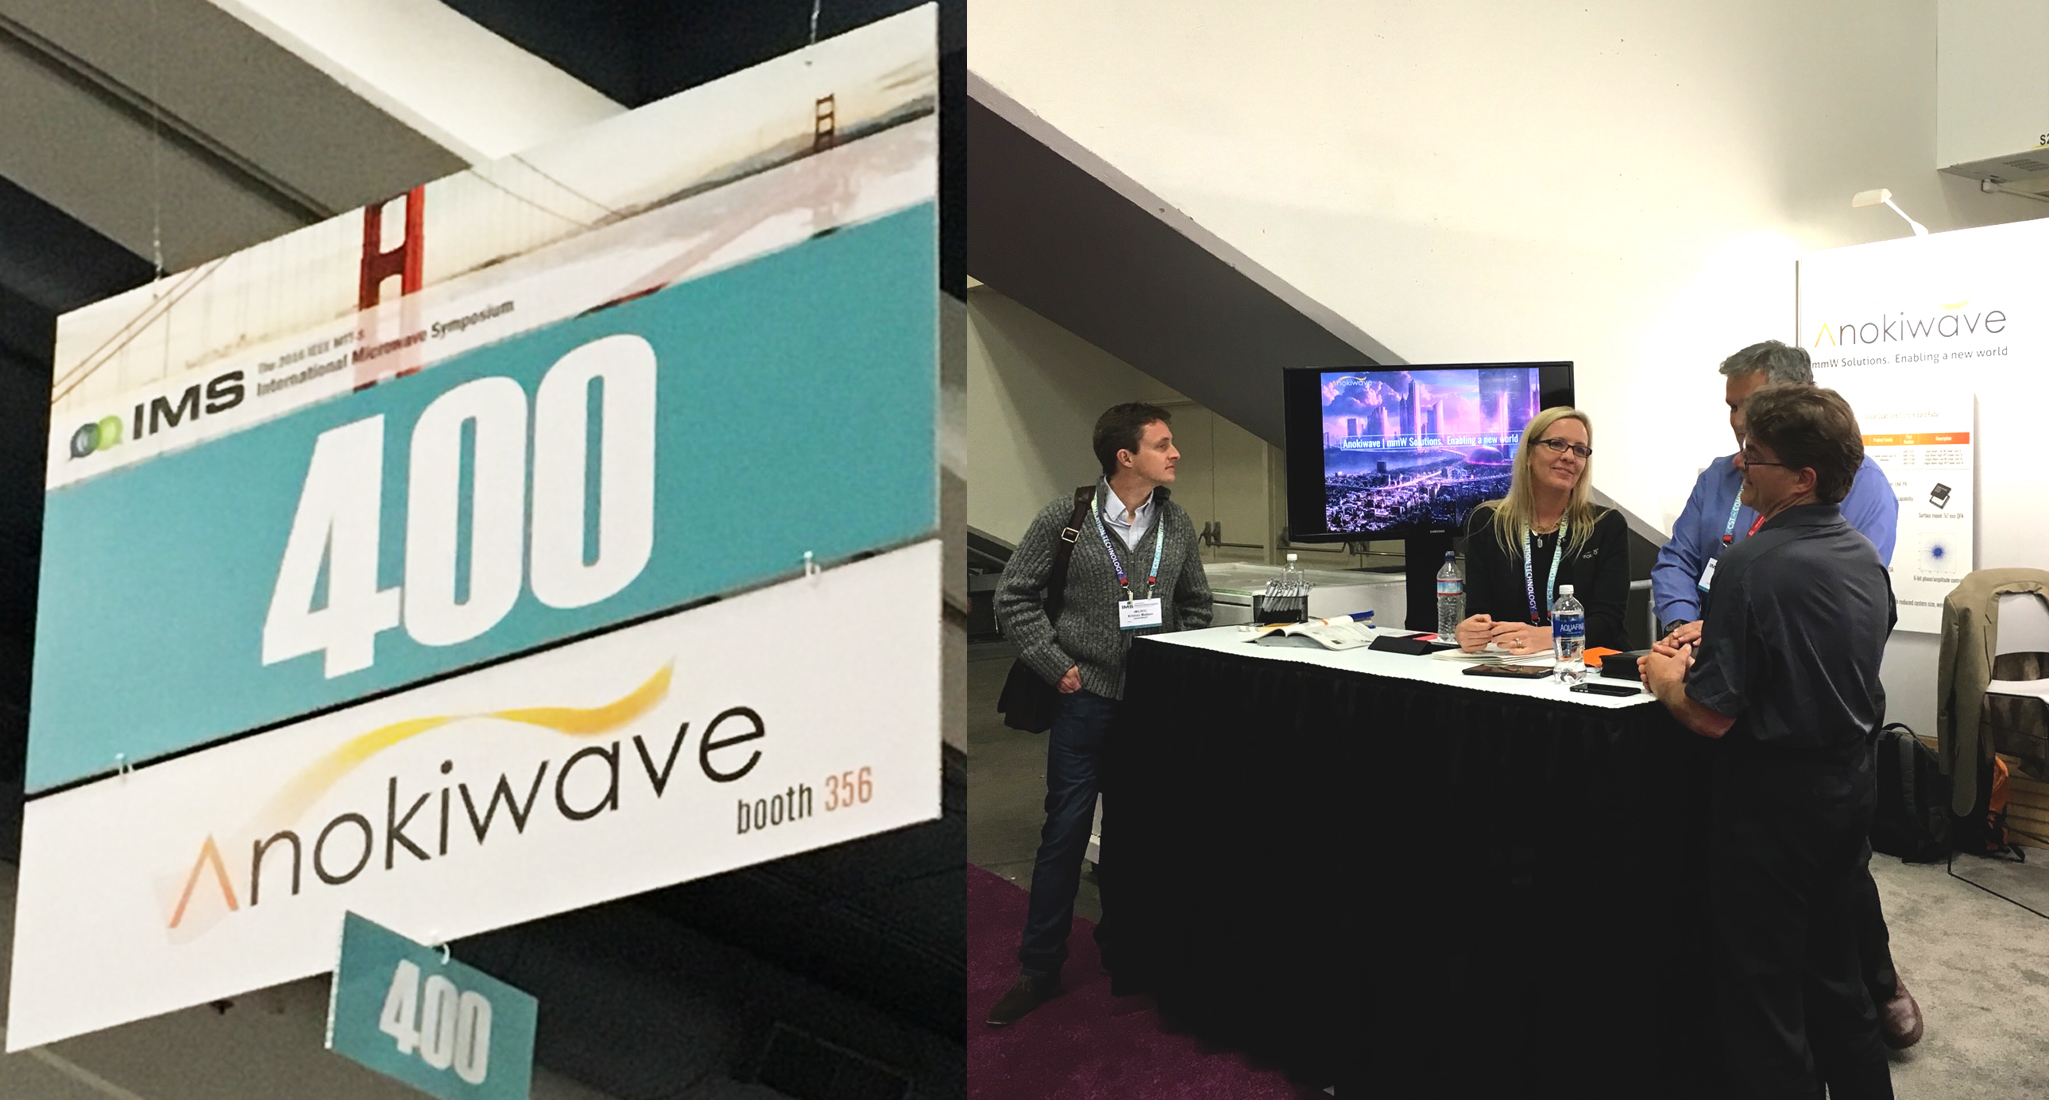 Anokiwave at IMS2016